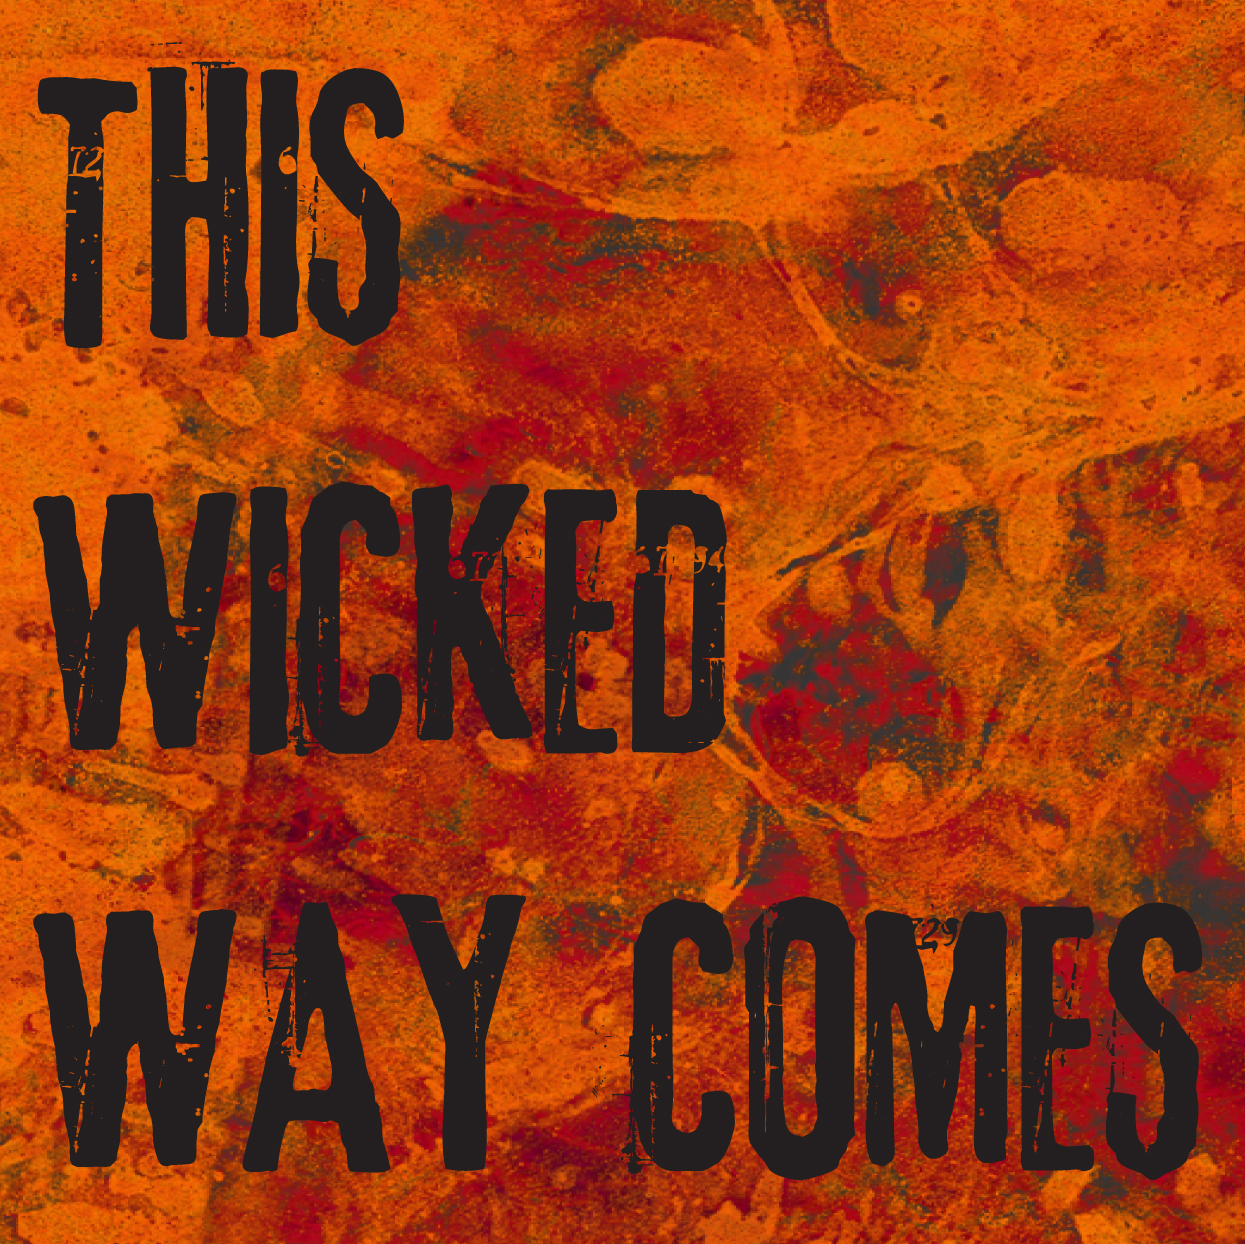 This Wicked Way Comes - Partnered with KFAI.org to produce a post-apocalyptic themed actual-play podcast using role-playing system Apocalypse World incorporating feminist themes Listen to the show at KFAI.org or wherever you listen to podcasts. Subscribe on iTunes, Spotify, Google Play, Stitcher, and others.Visit:http://thiswickedwaycomes.com/